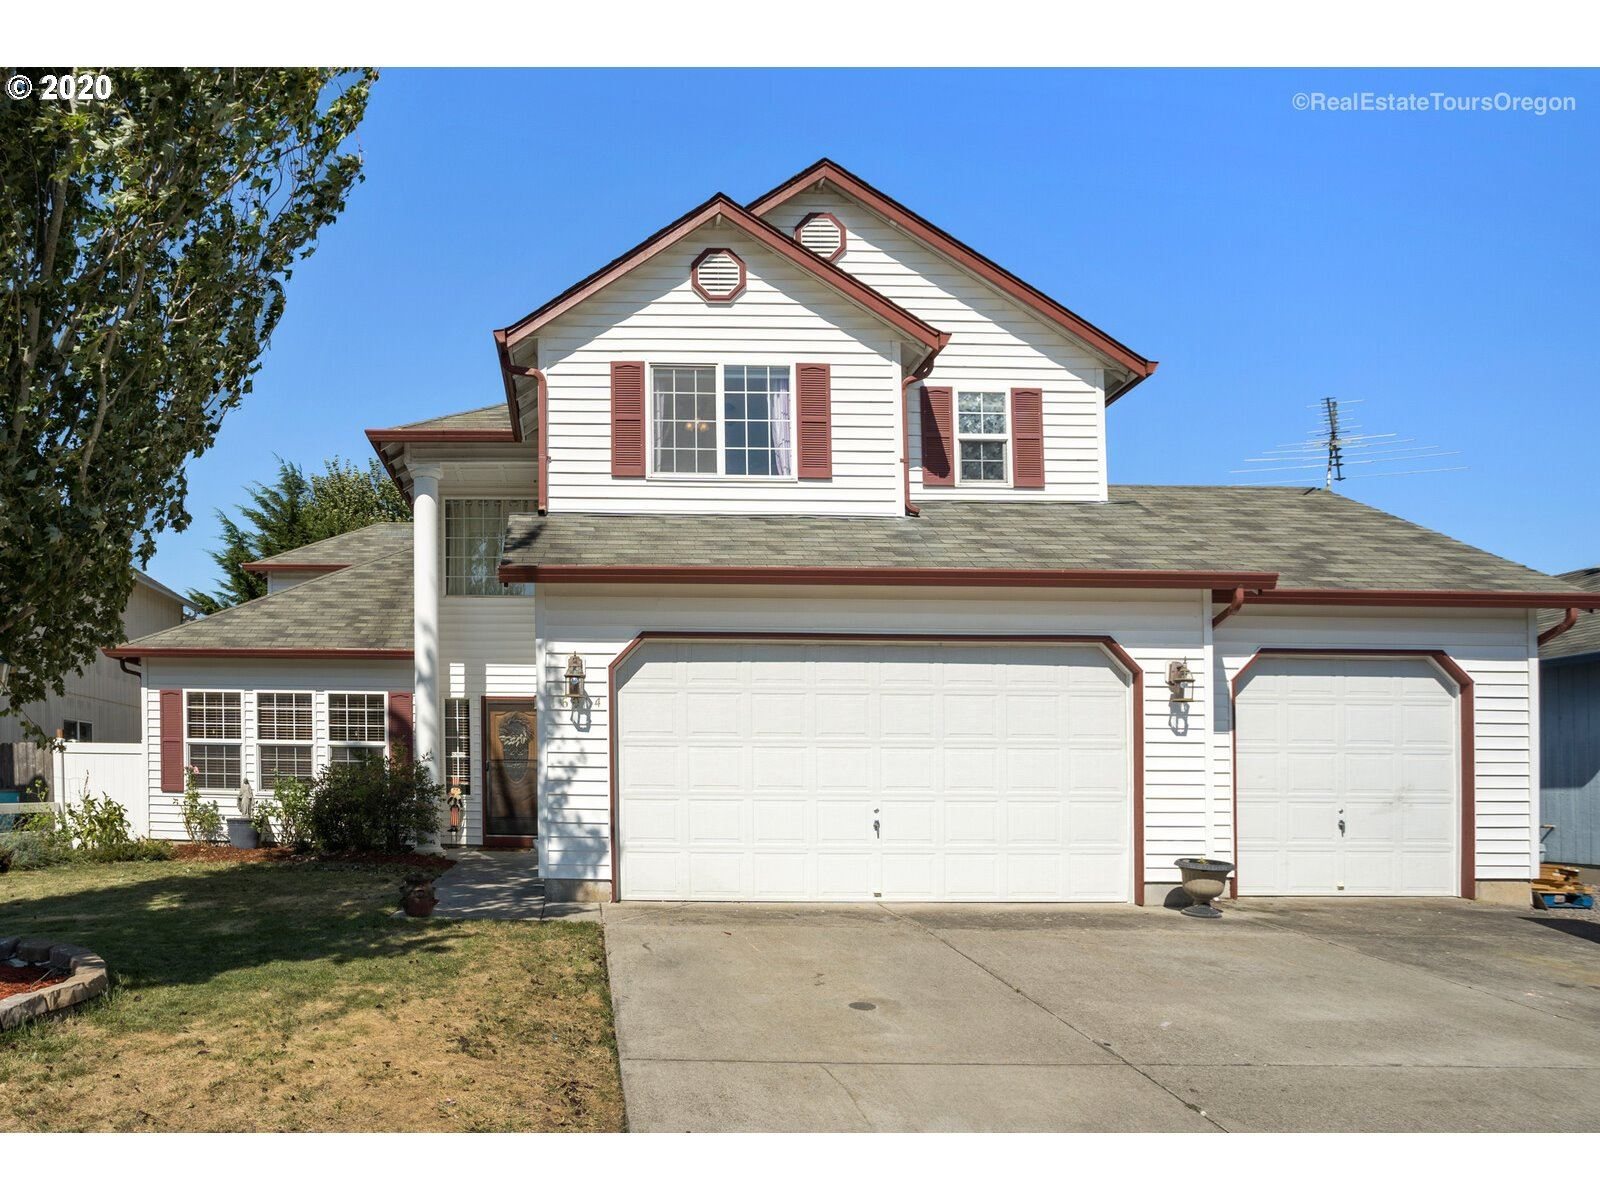 16014 NE 72ND CIR, Vancouver, WA 98682 - MLS#: 20308888